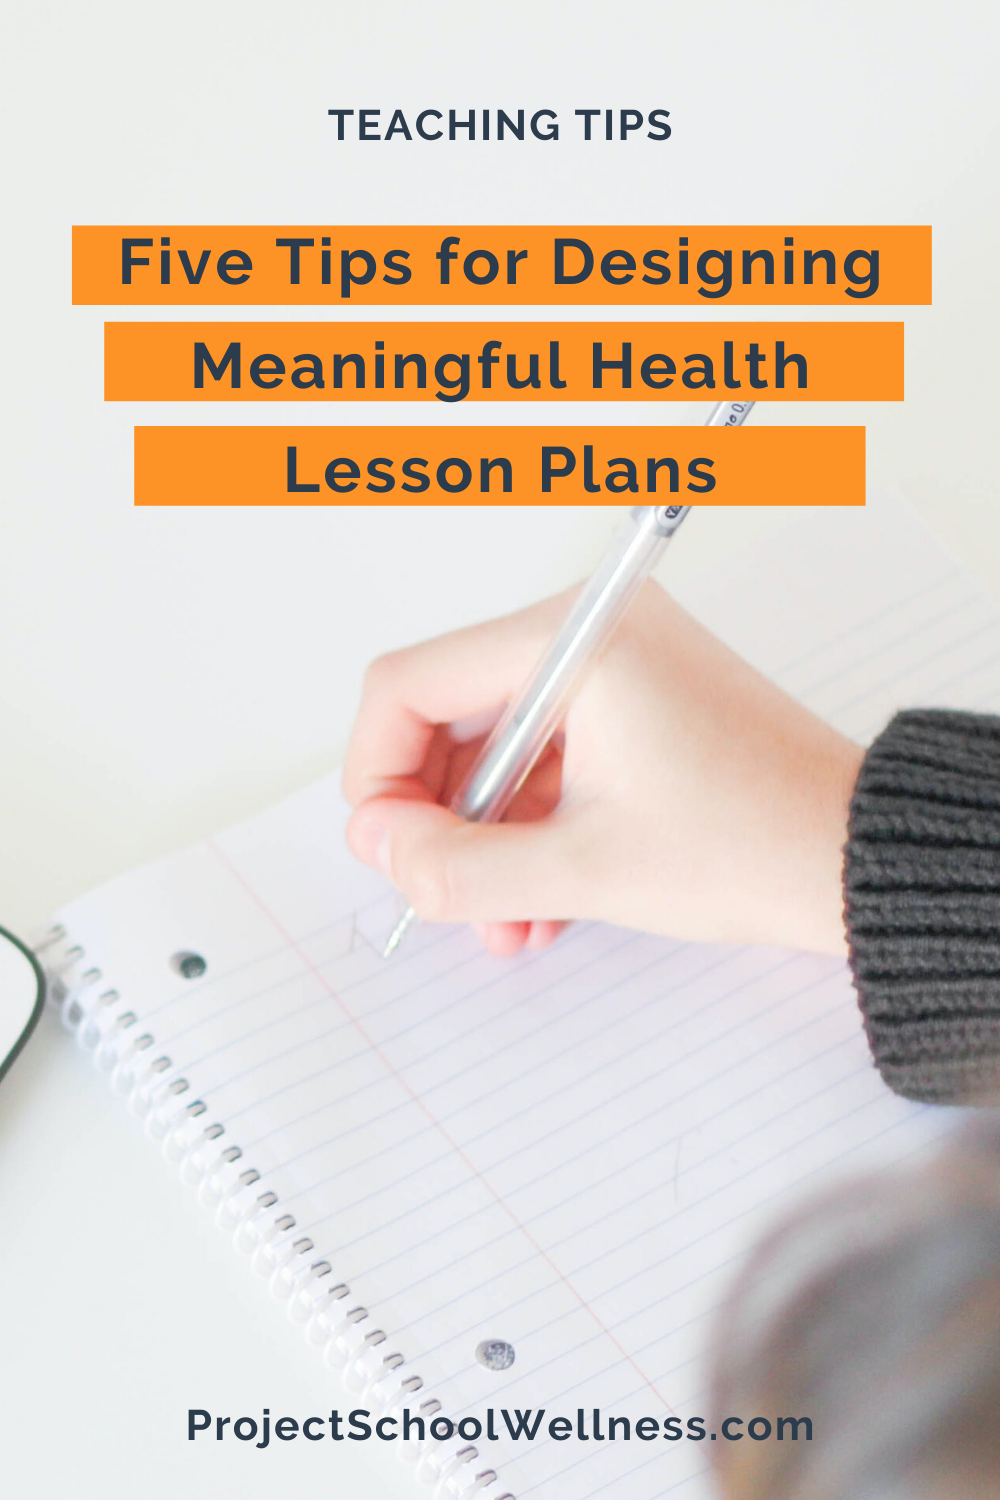 Health Blog - Teaching Tips for Designing Meaningful ...